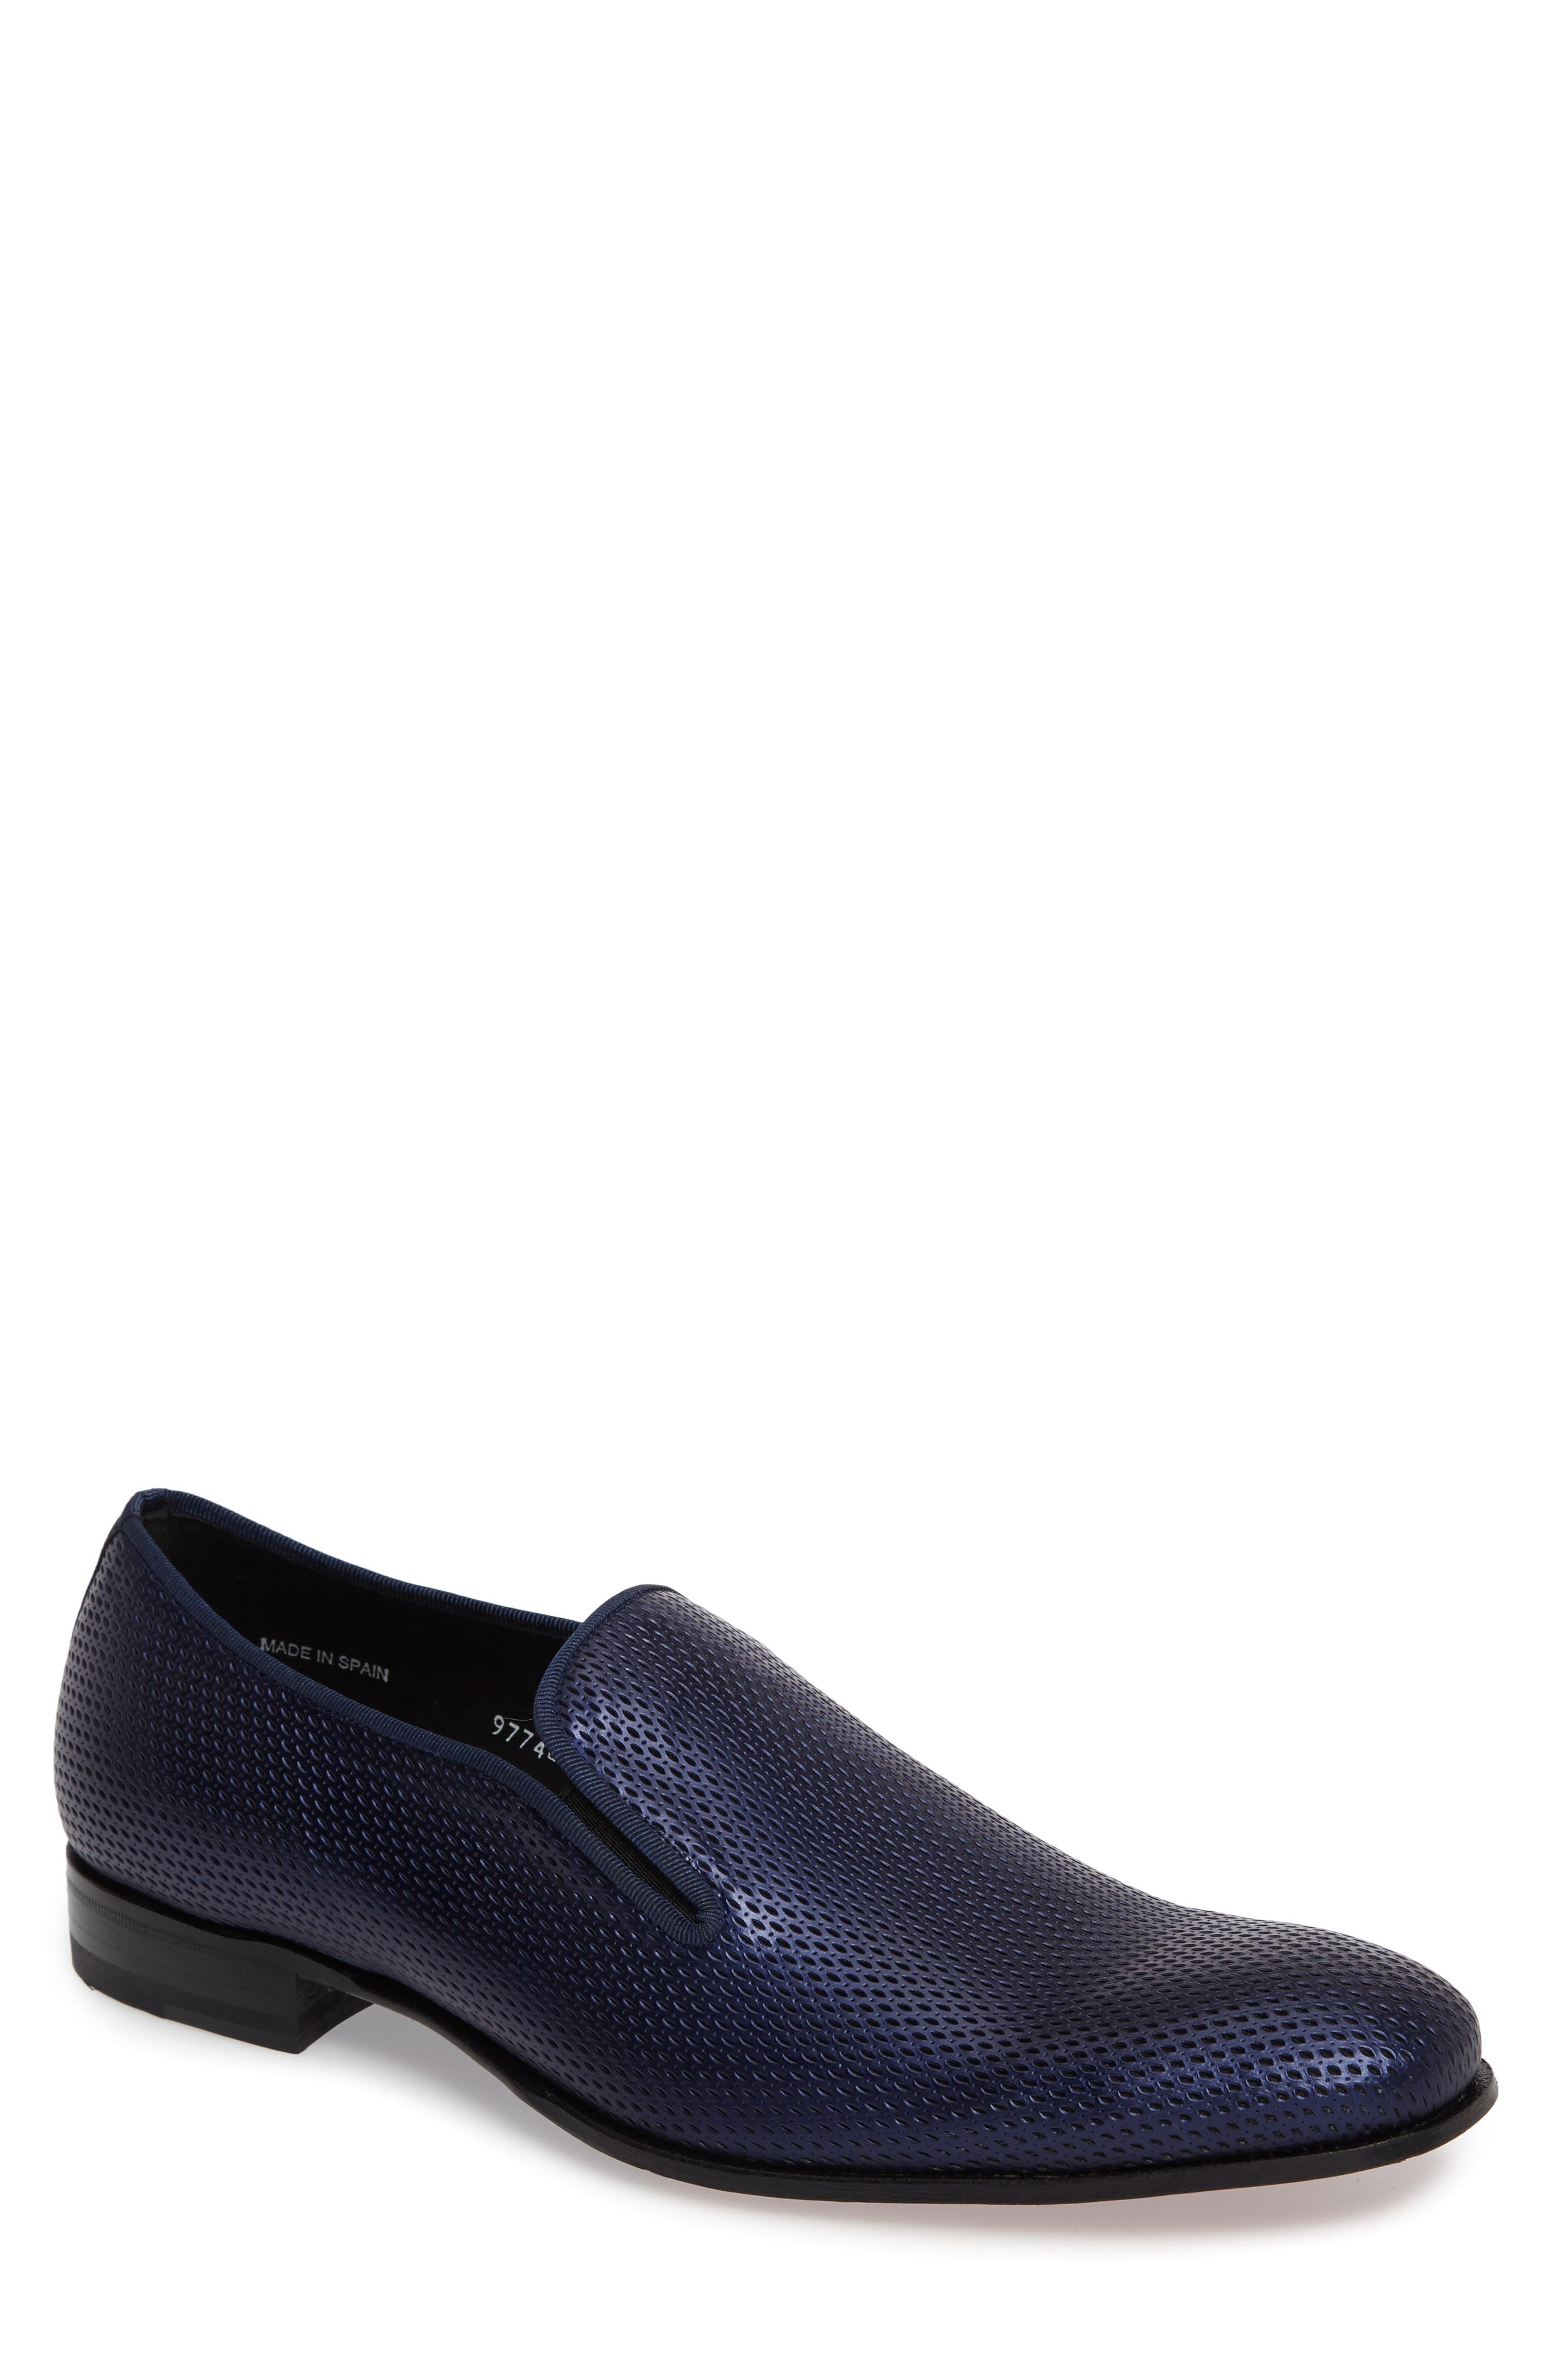 Auguste Venetian Loafer,                             Main thumbnail 1, color,